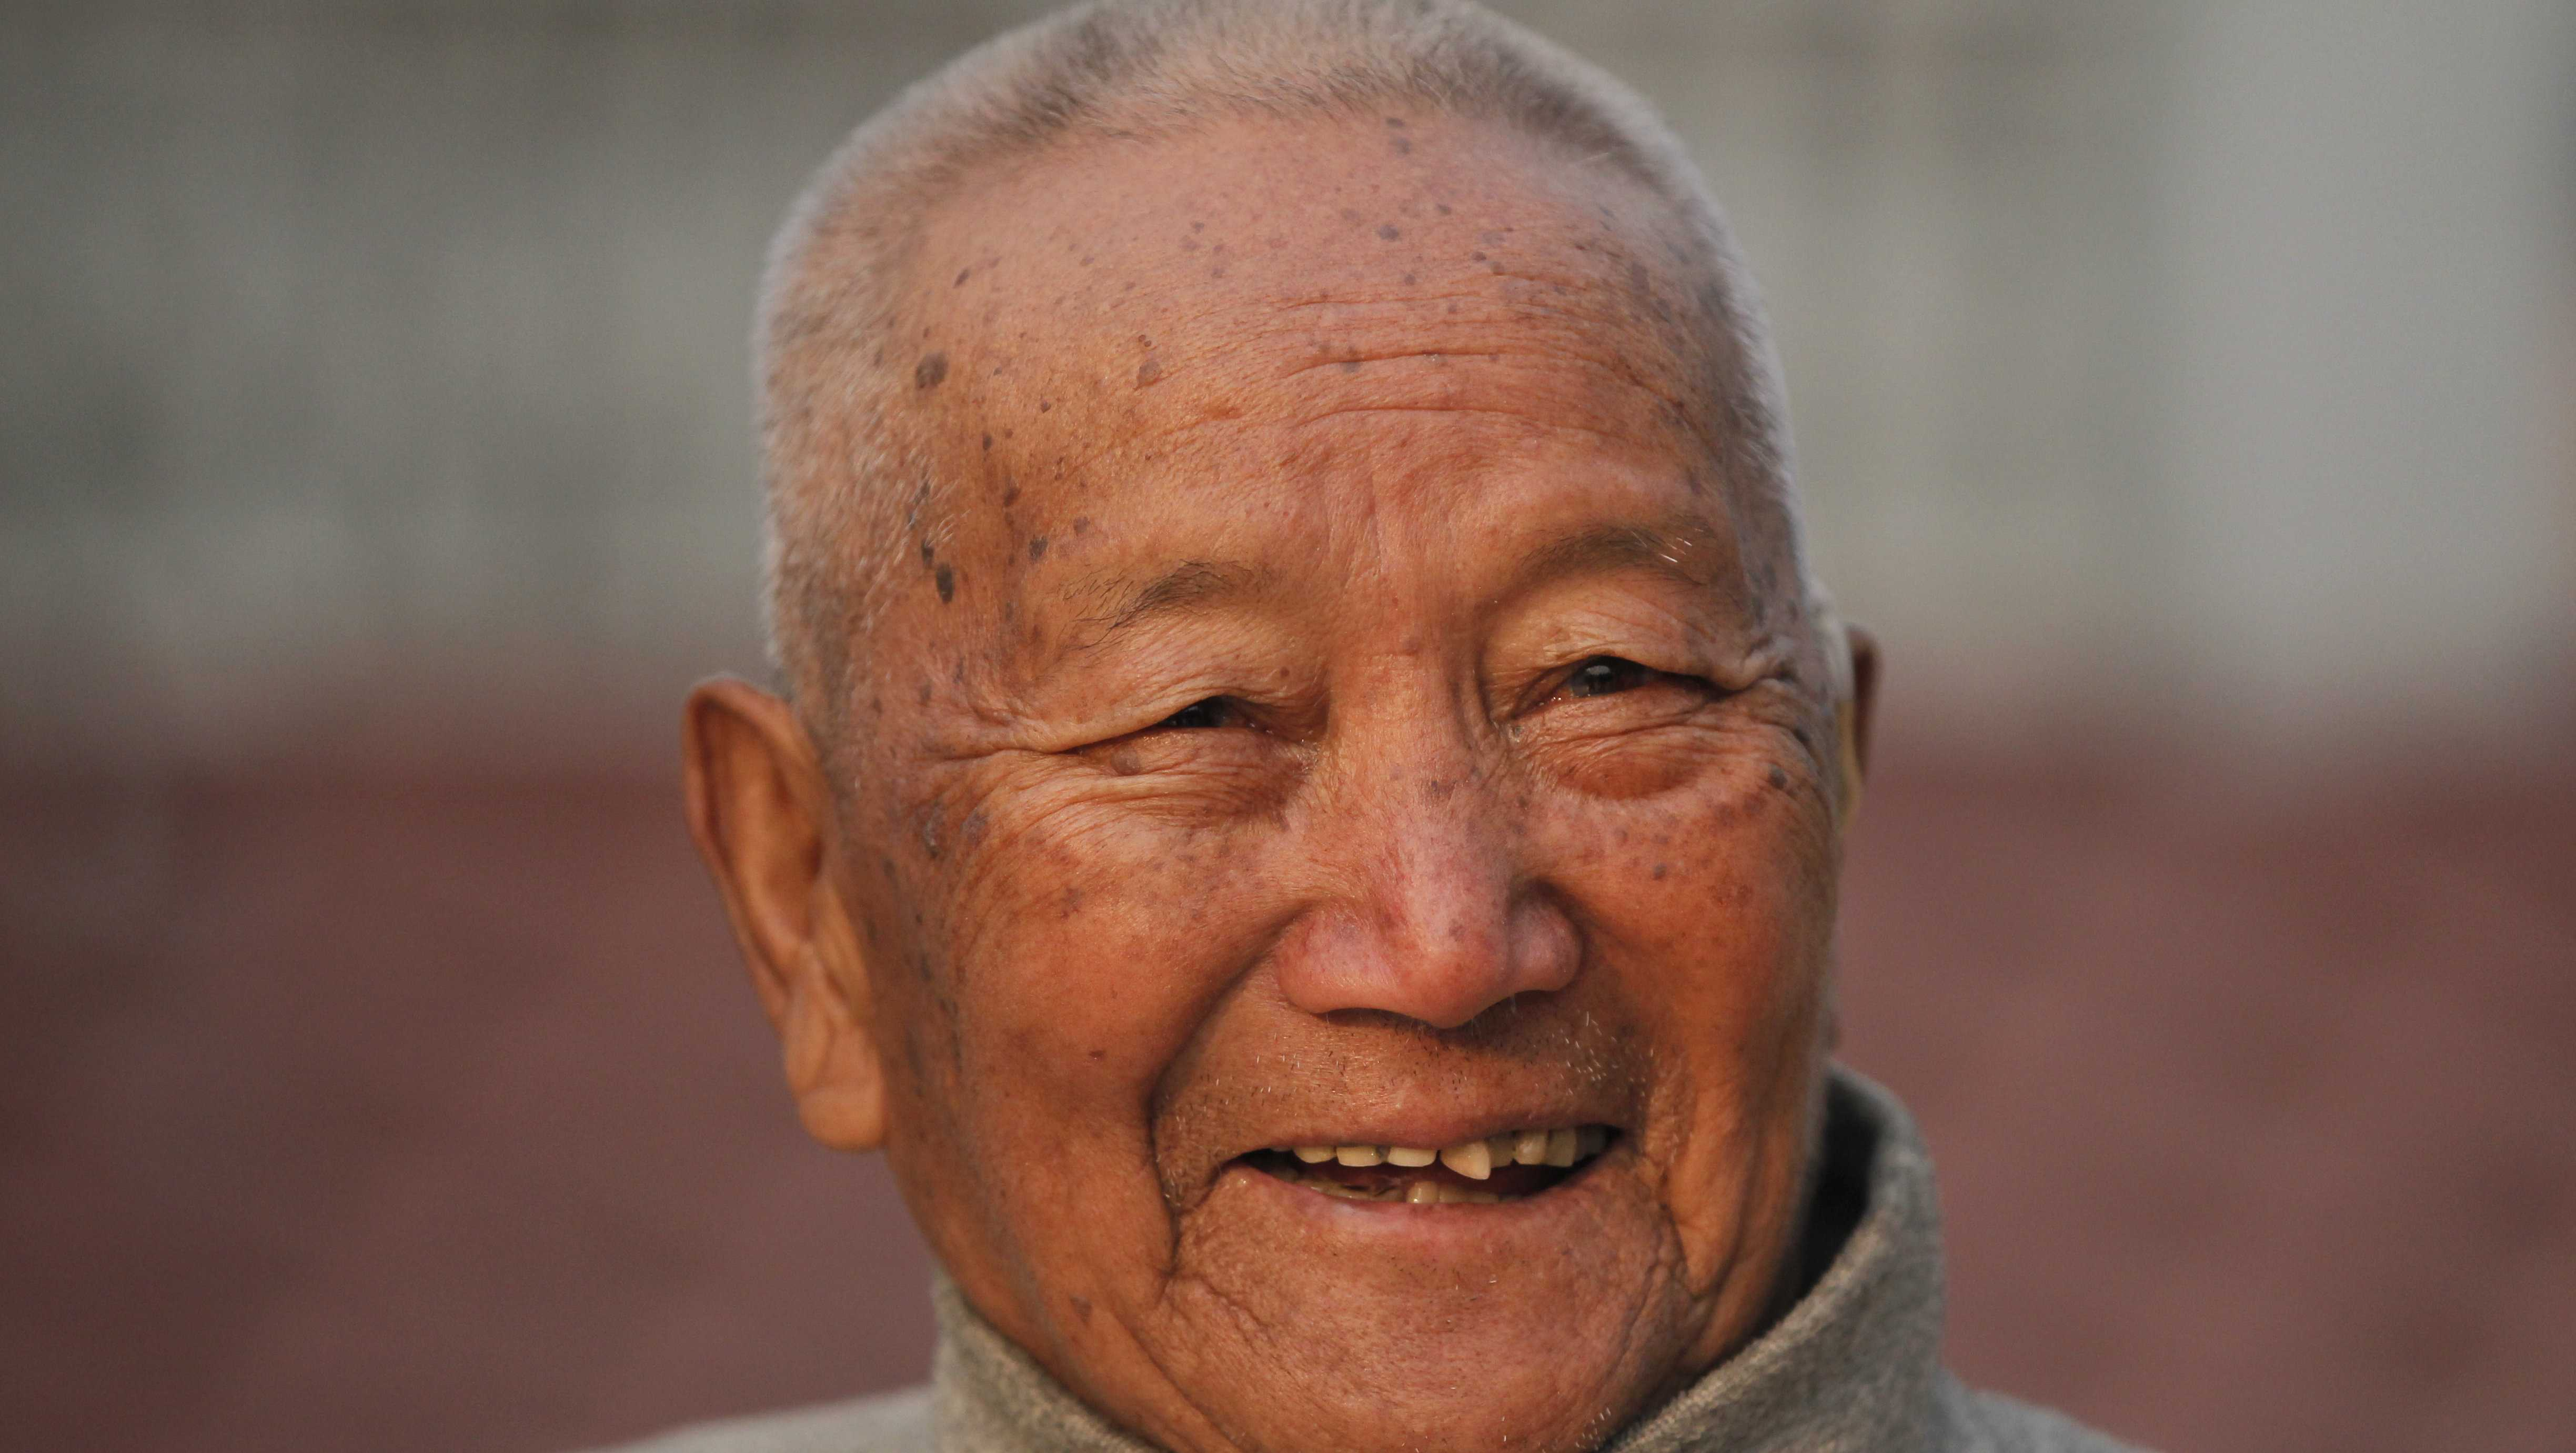 In this April 12, 2017 file photo, Nepalese mountain climber Min Bahadur Sherchan, 85, smiles as he finishes his morning yoga workout at his residence in Kathmandu, Nepal. Officials say Sherchan who was attempting to scale Mount Everest to regain his title as the oldest person to scale the world's highest peak has died at the base camp on Saturday, May 6, but was not clear about the cause of the death.